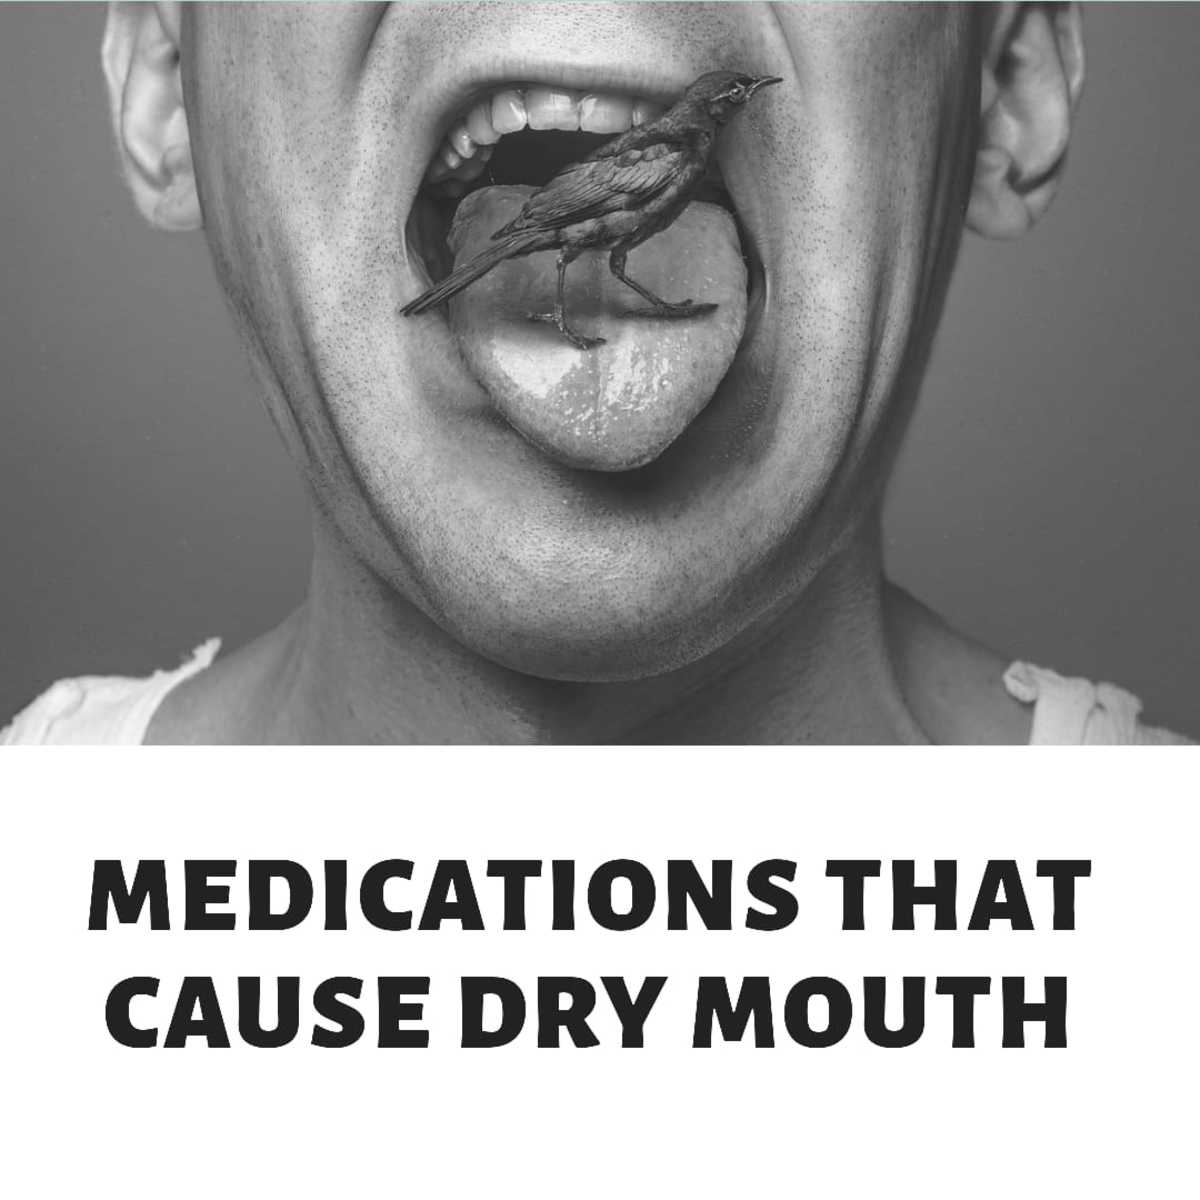 medications-that-cause-dry-mouth